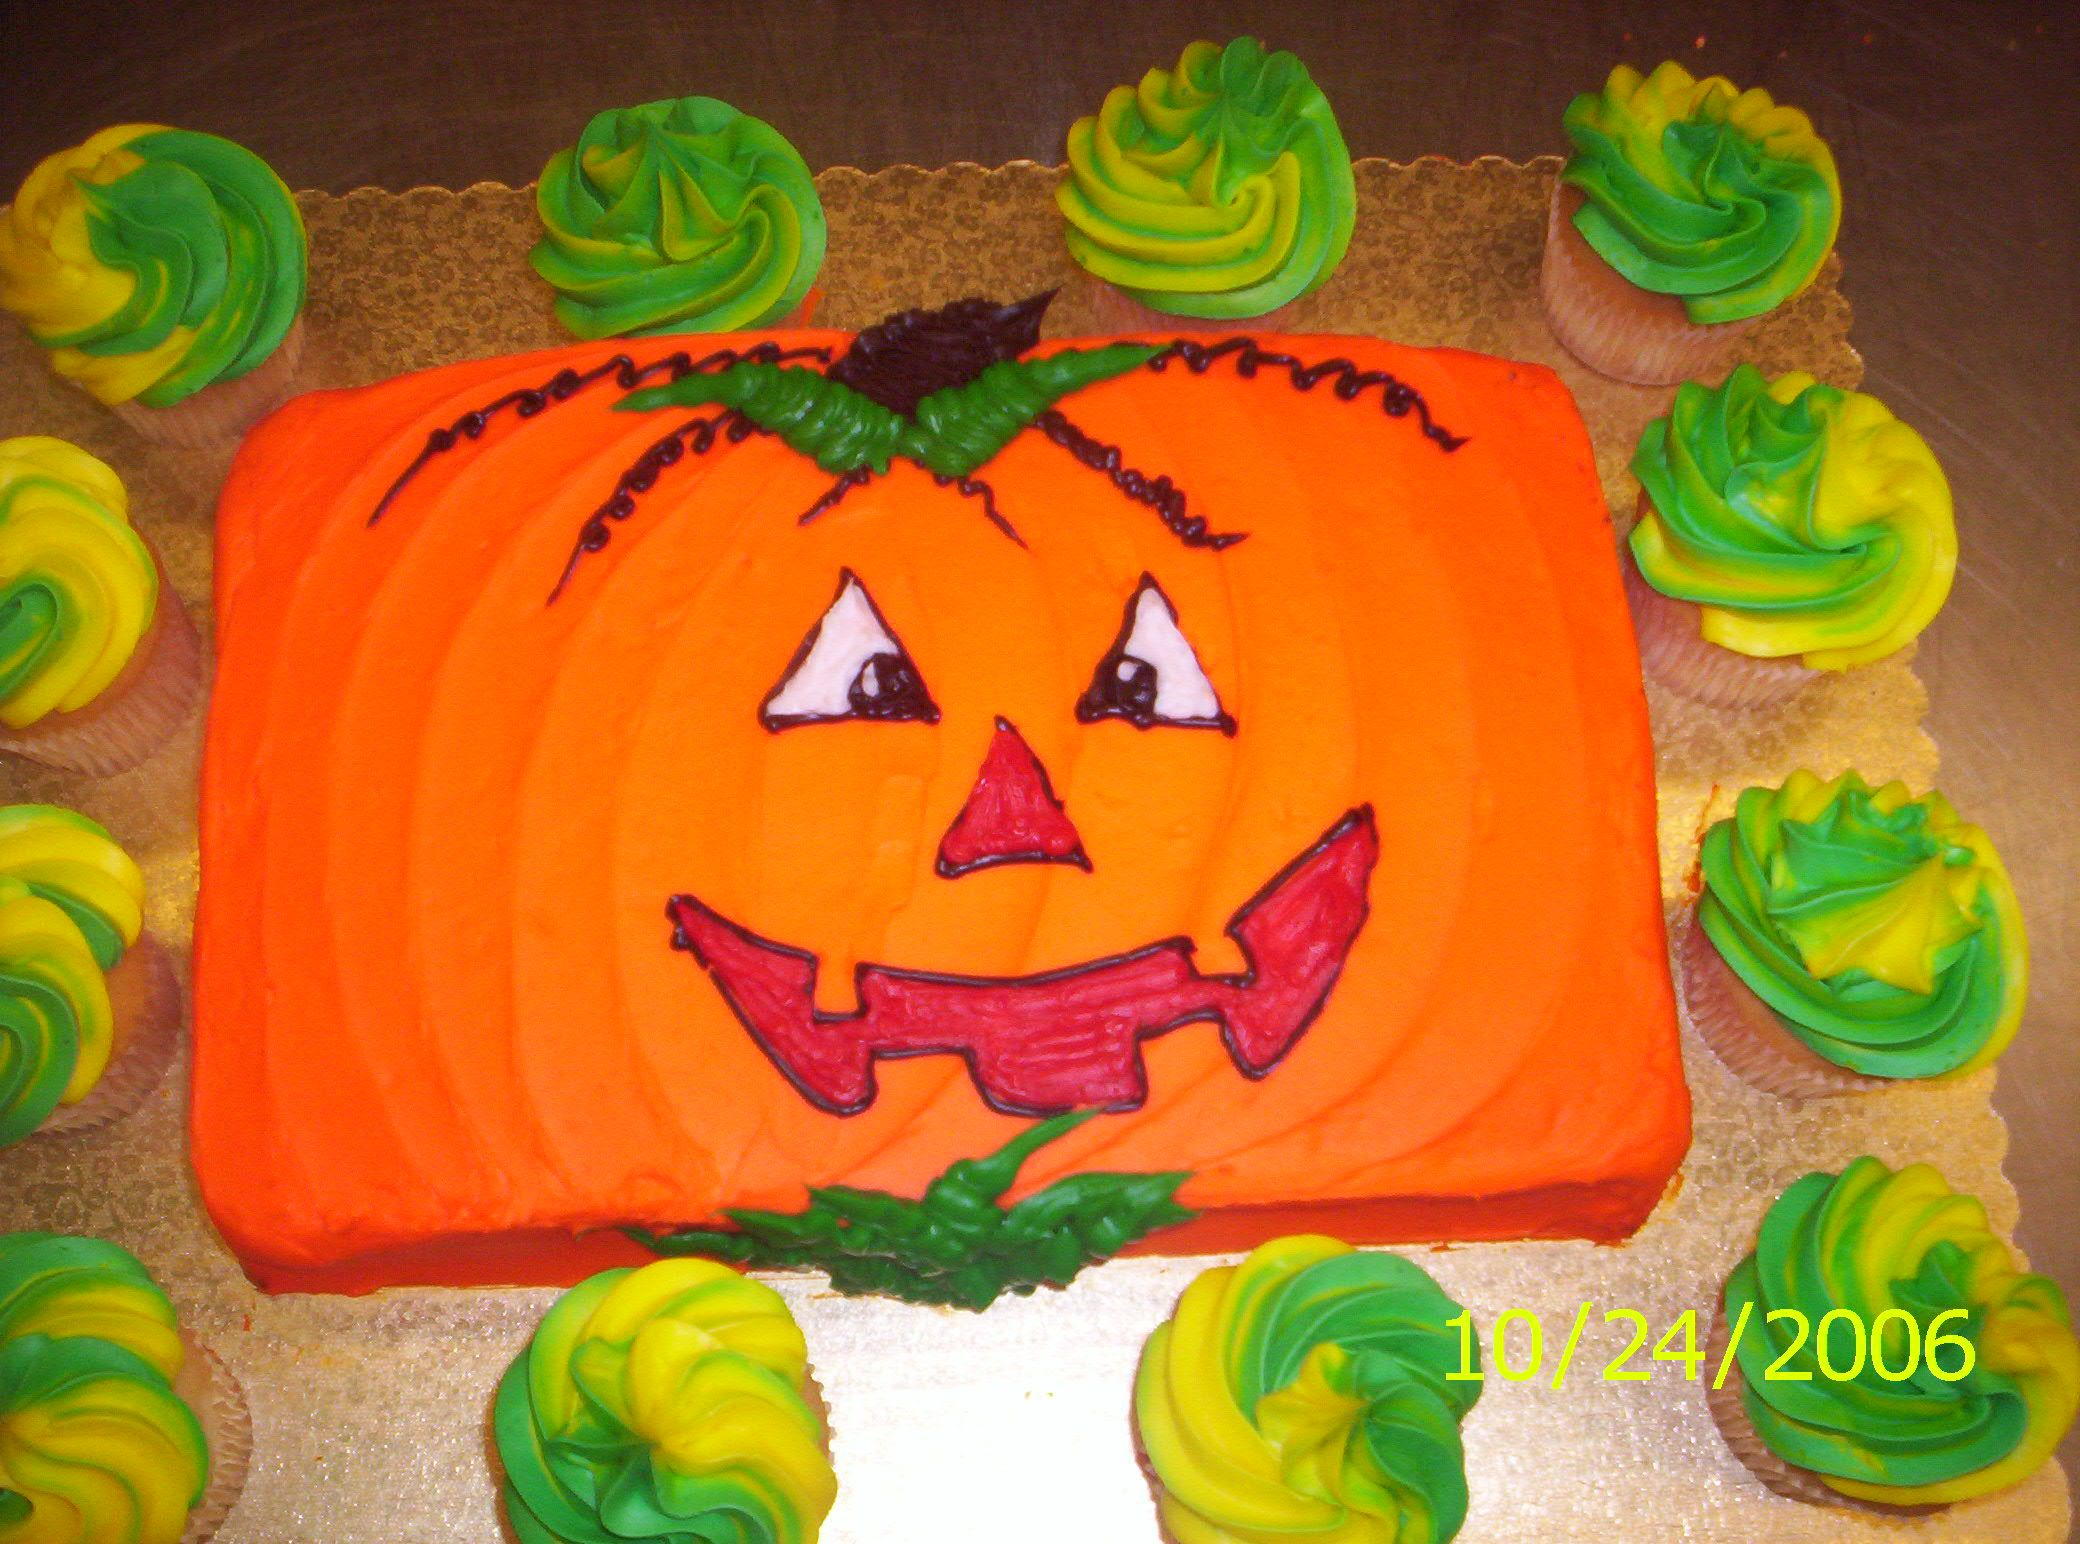 Halloween Decorated Cakes Cake decorating ideas Pinterest - Halloween Cake Decorating Ideas